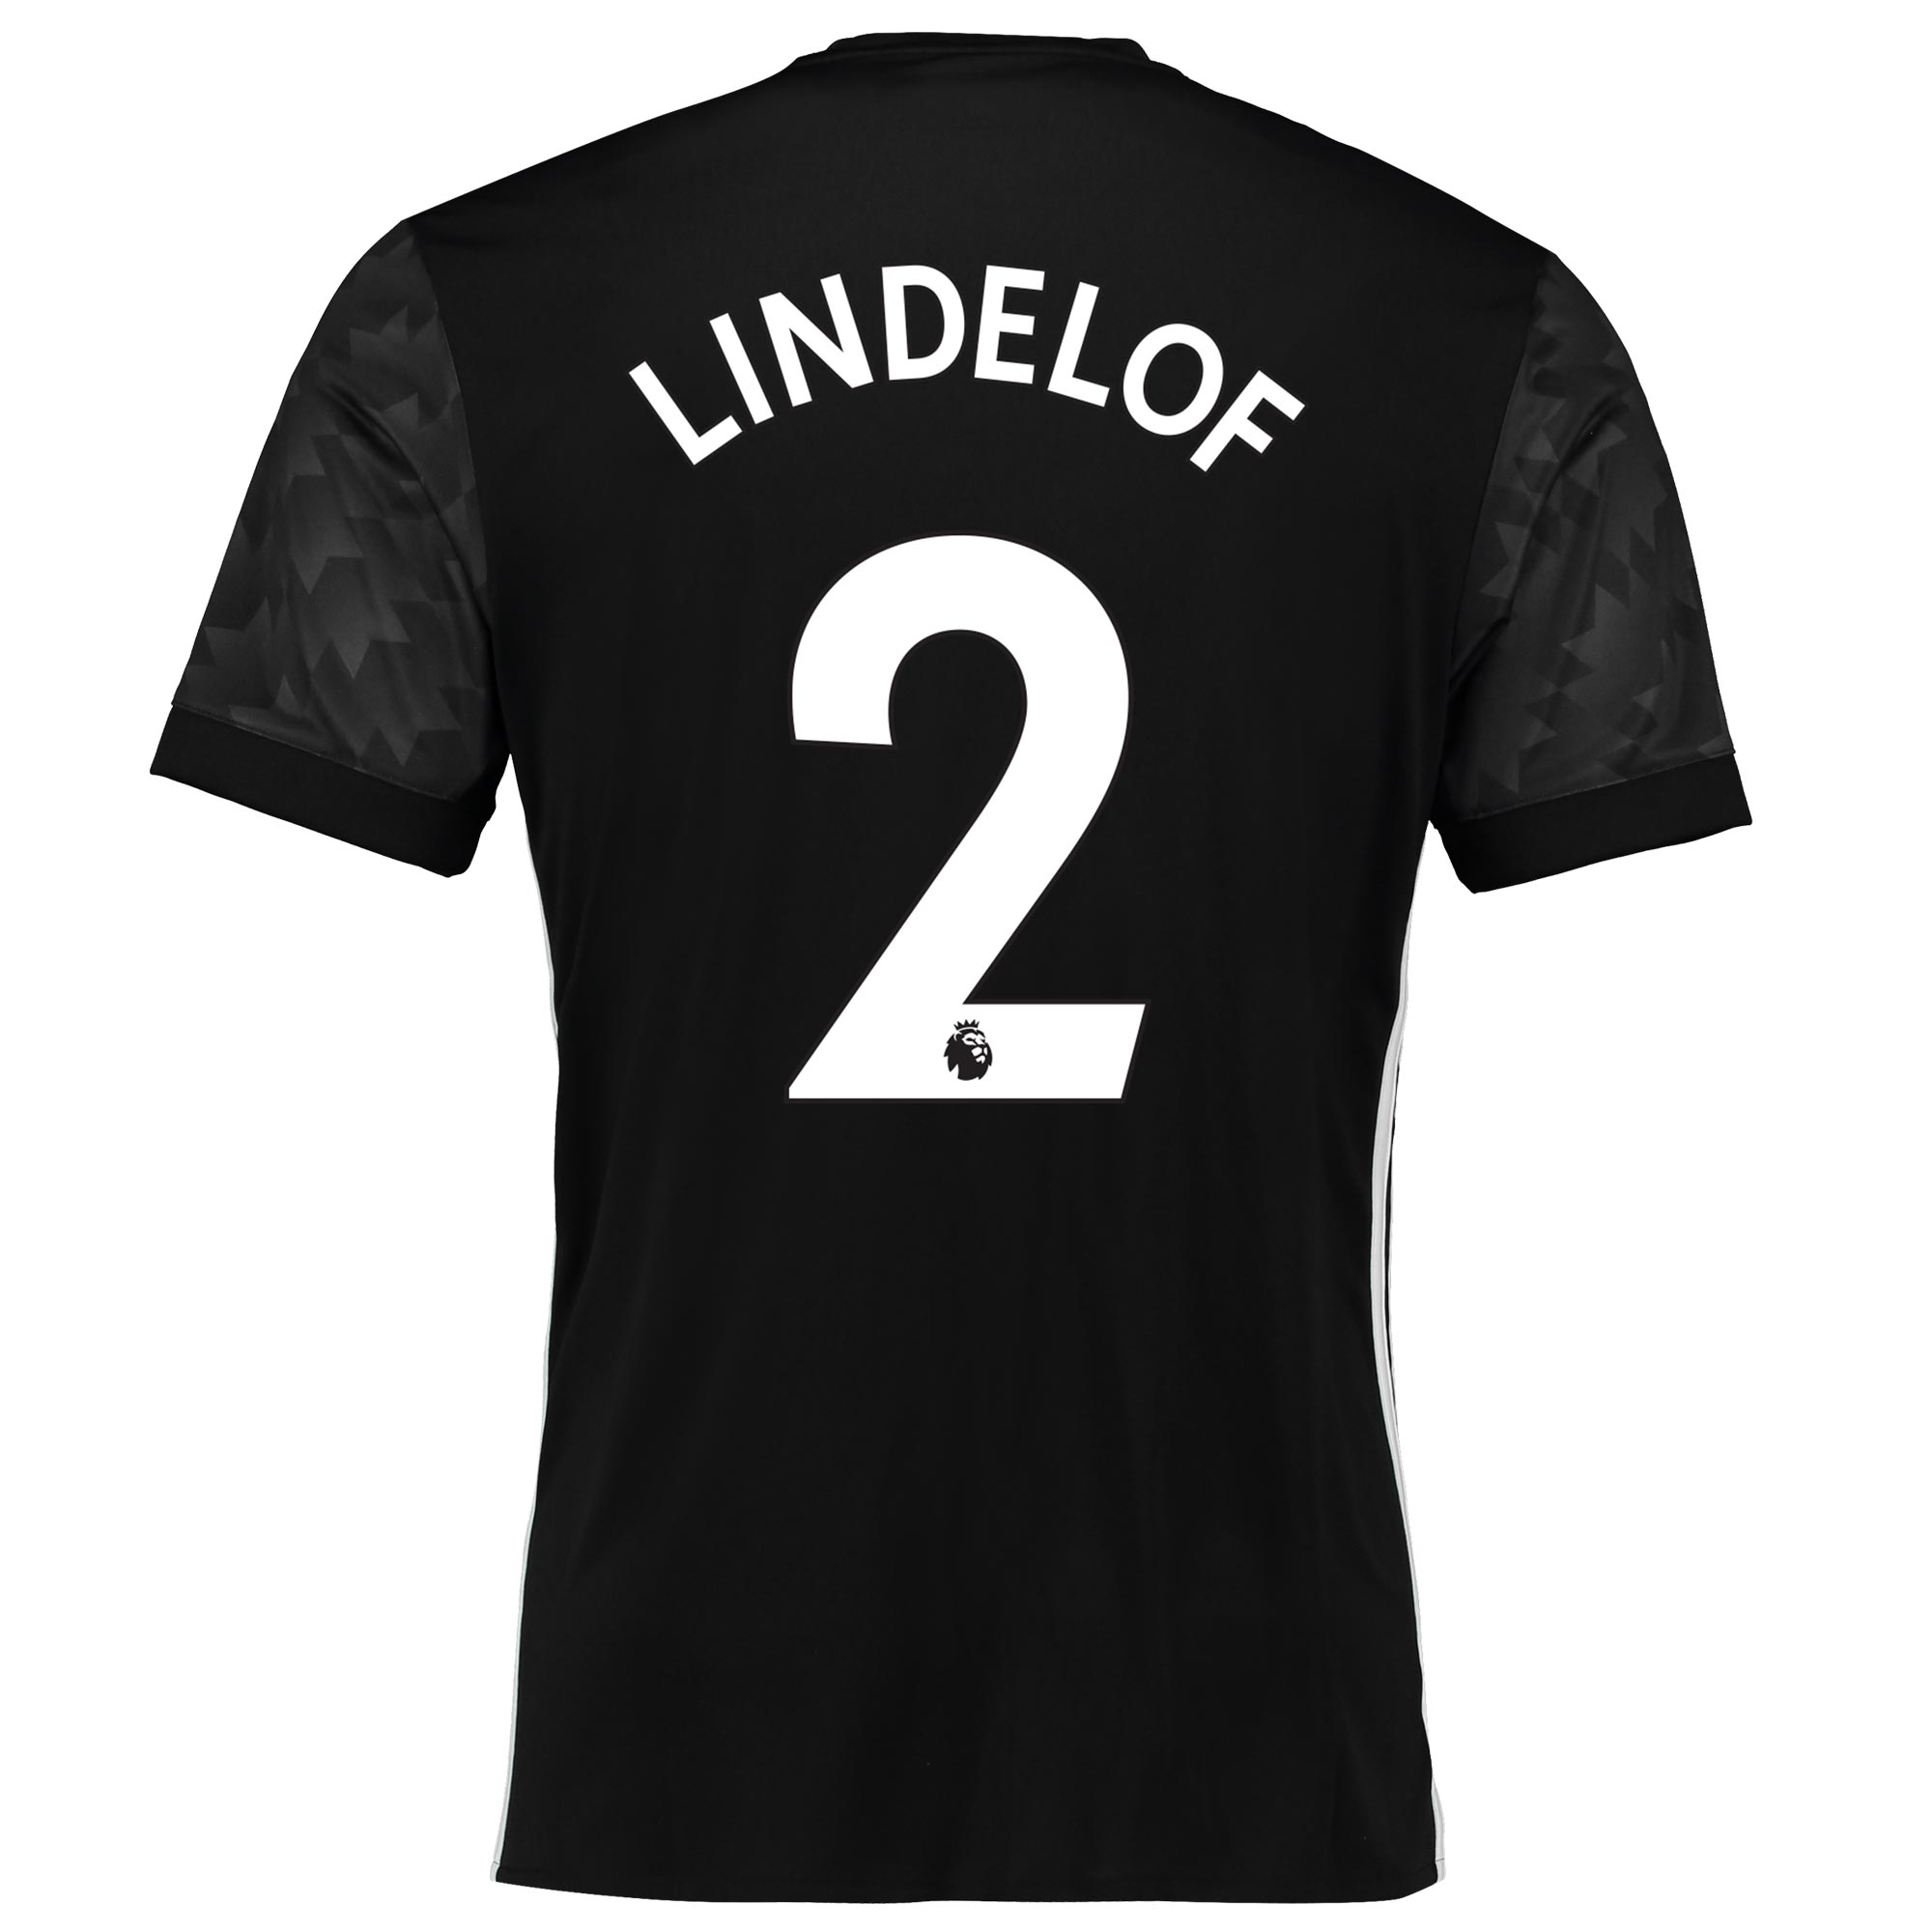 Manchester United Away Shirt 2017-18 with Lindelof TBC printing